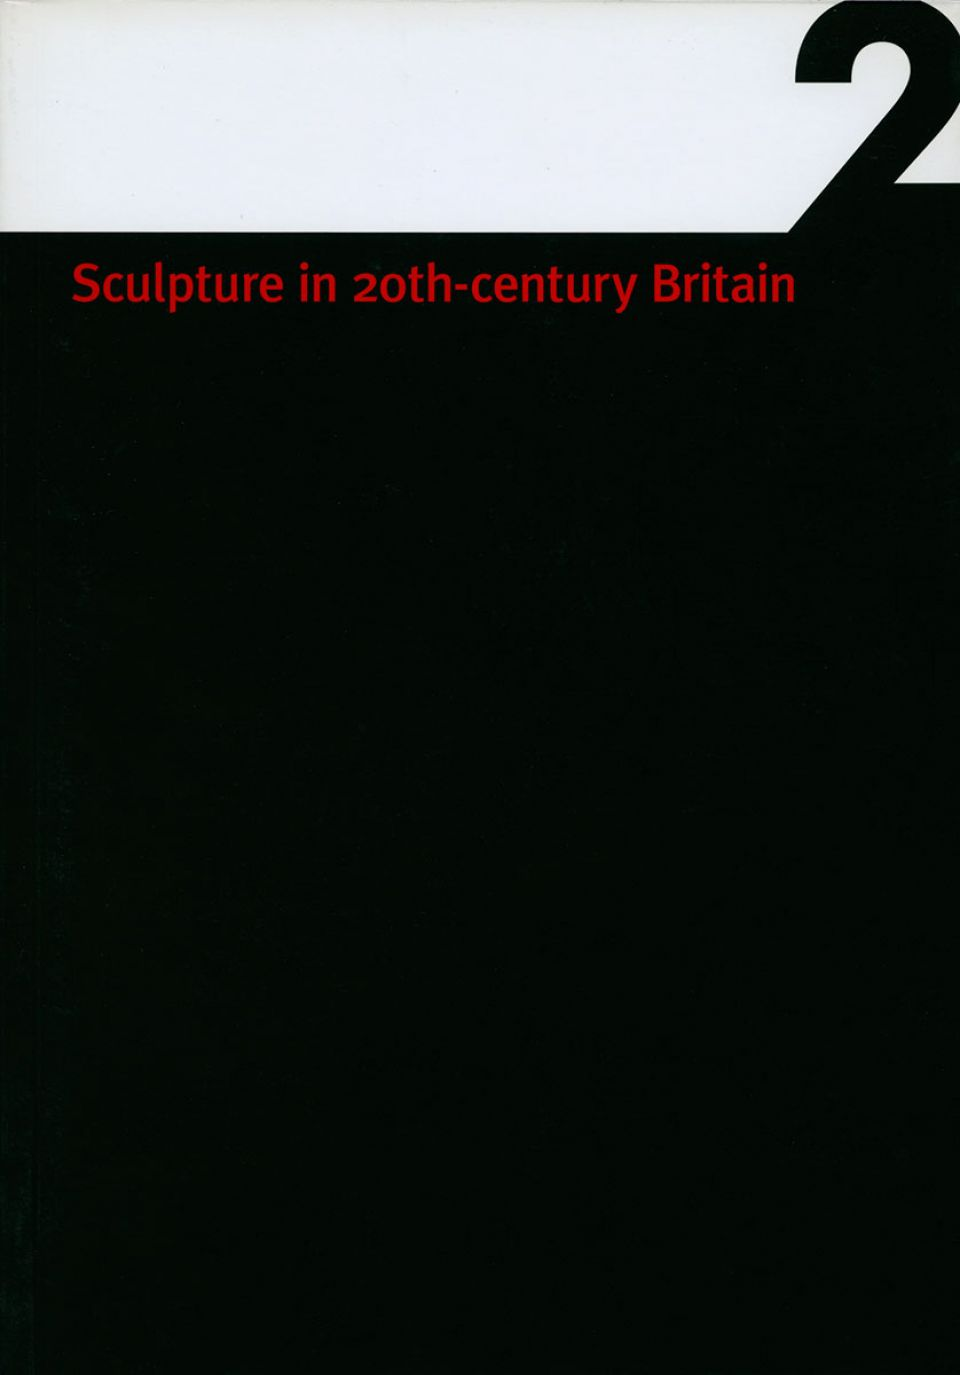 Sculpture in 20th-century Britain: Volume 2 cover